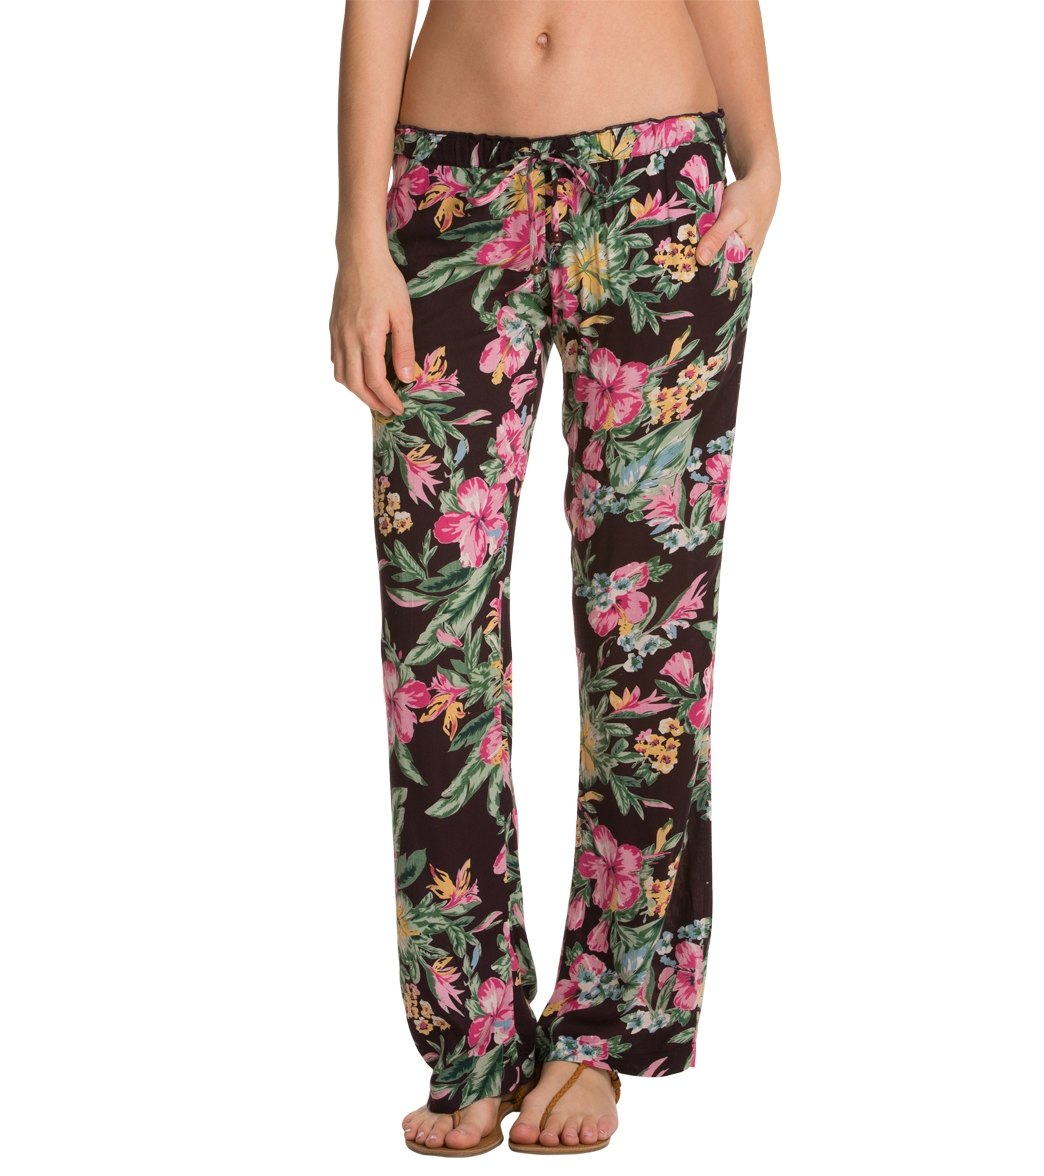 7e5d895783c8ae Rip Curl Paradise Found Beach Pant at SwimOutlet.com - Free Shipping